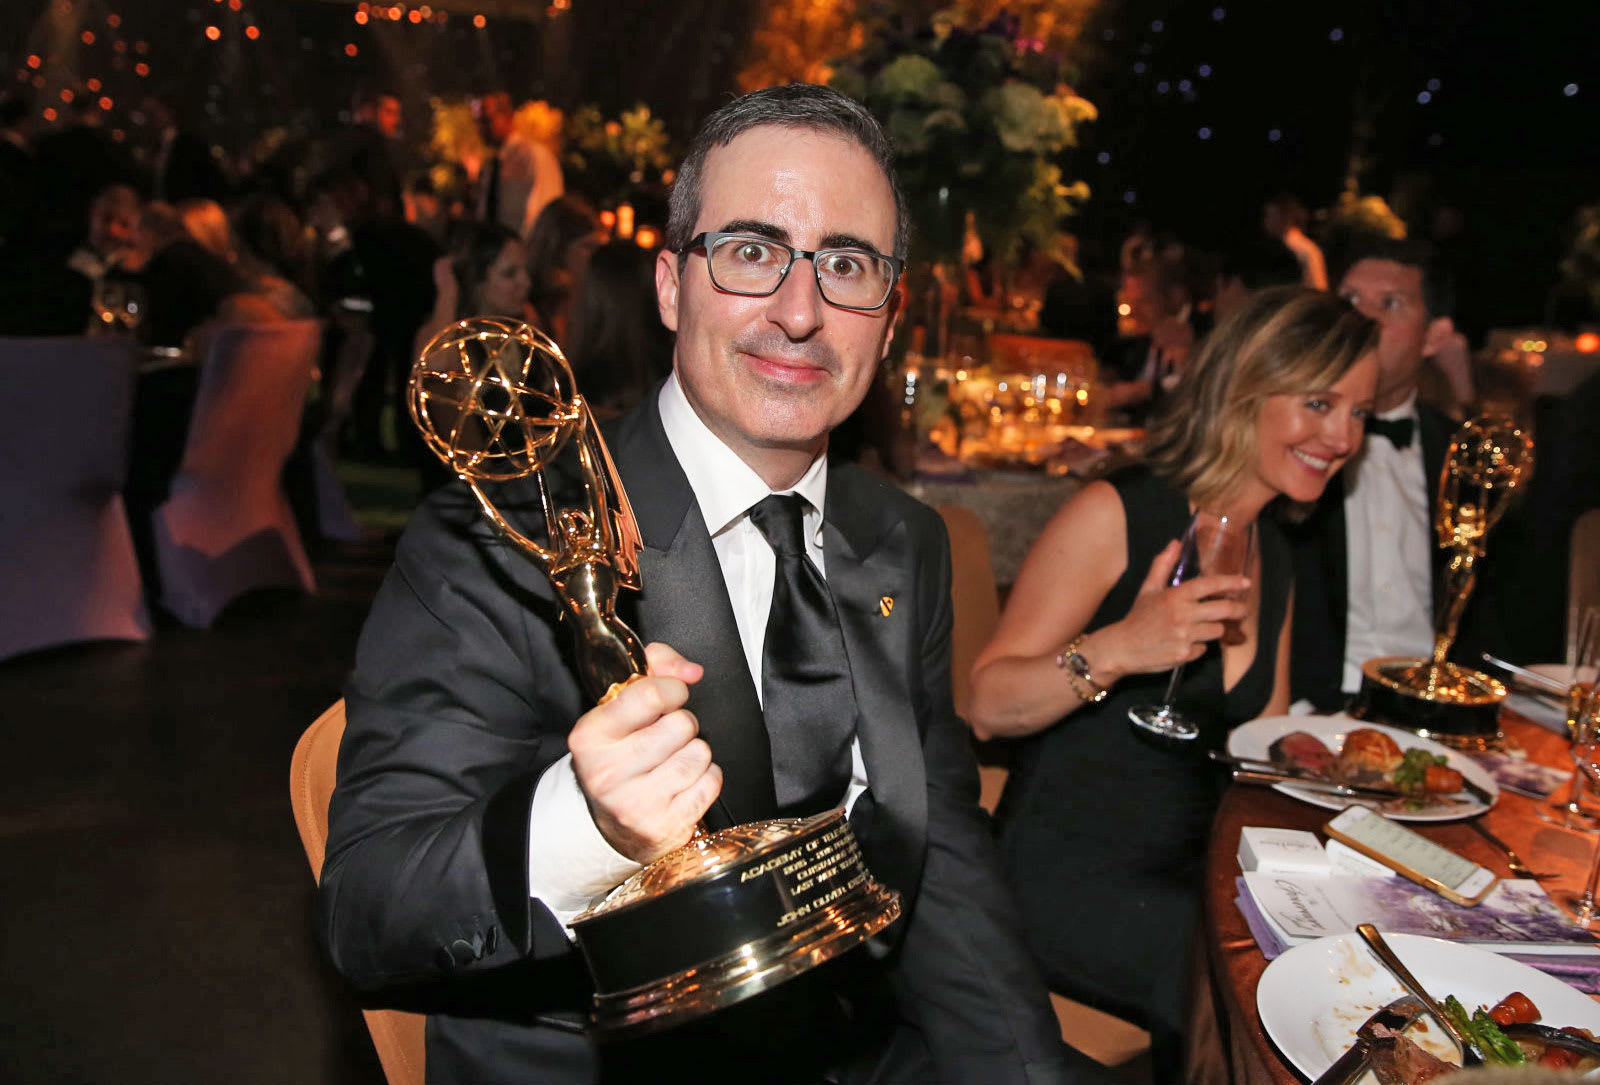 HBO's website is apparently blocked in China thanks to John Oliver